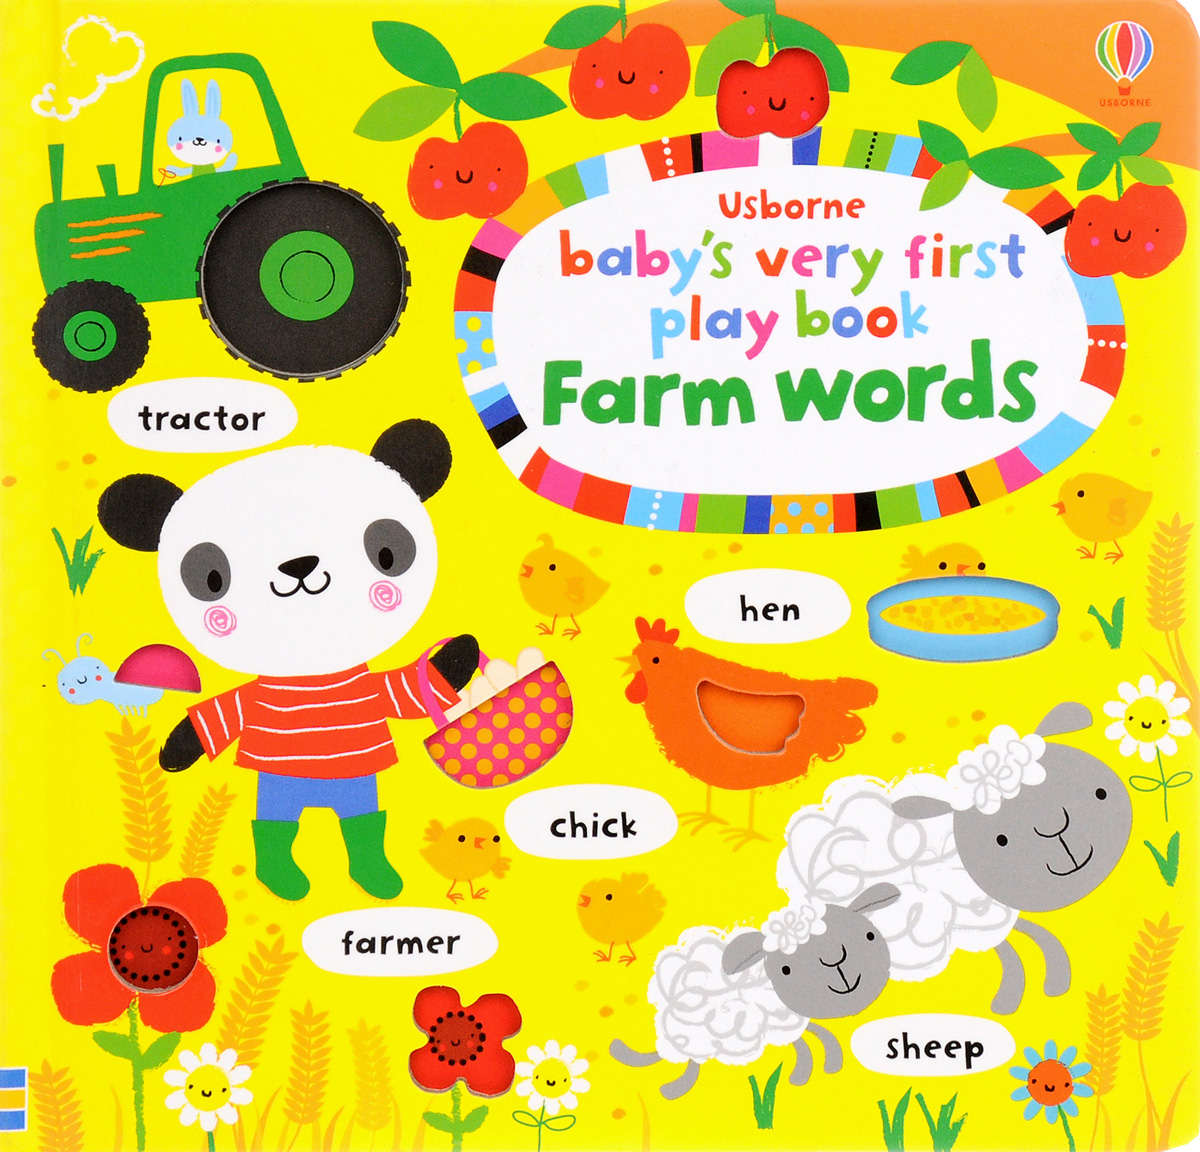 Baby's Very First Play book Farm words maisy s farm sticker book